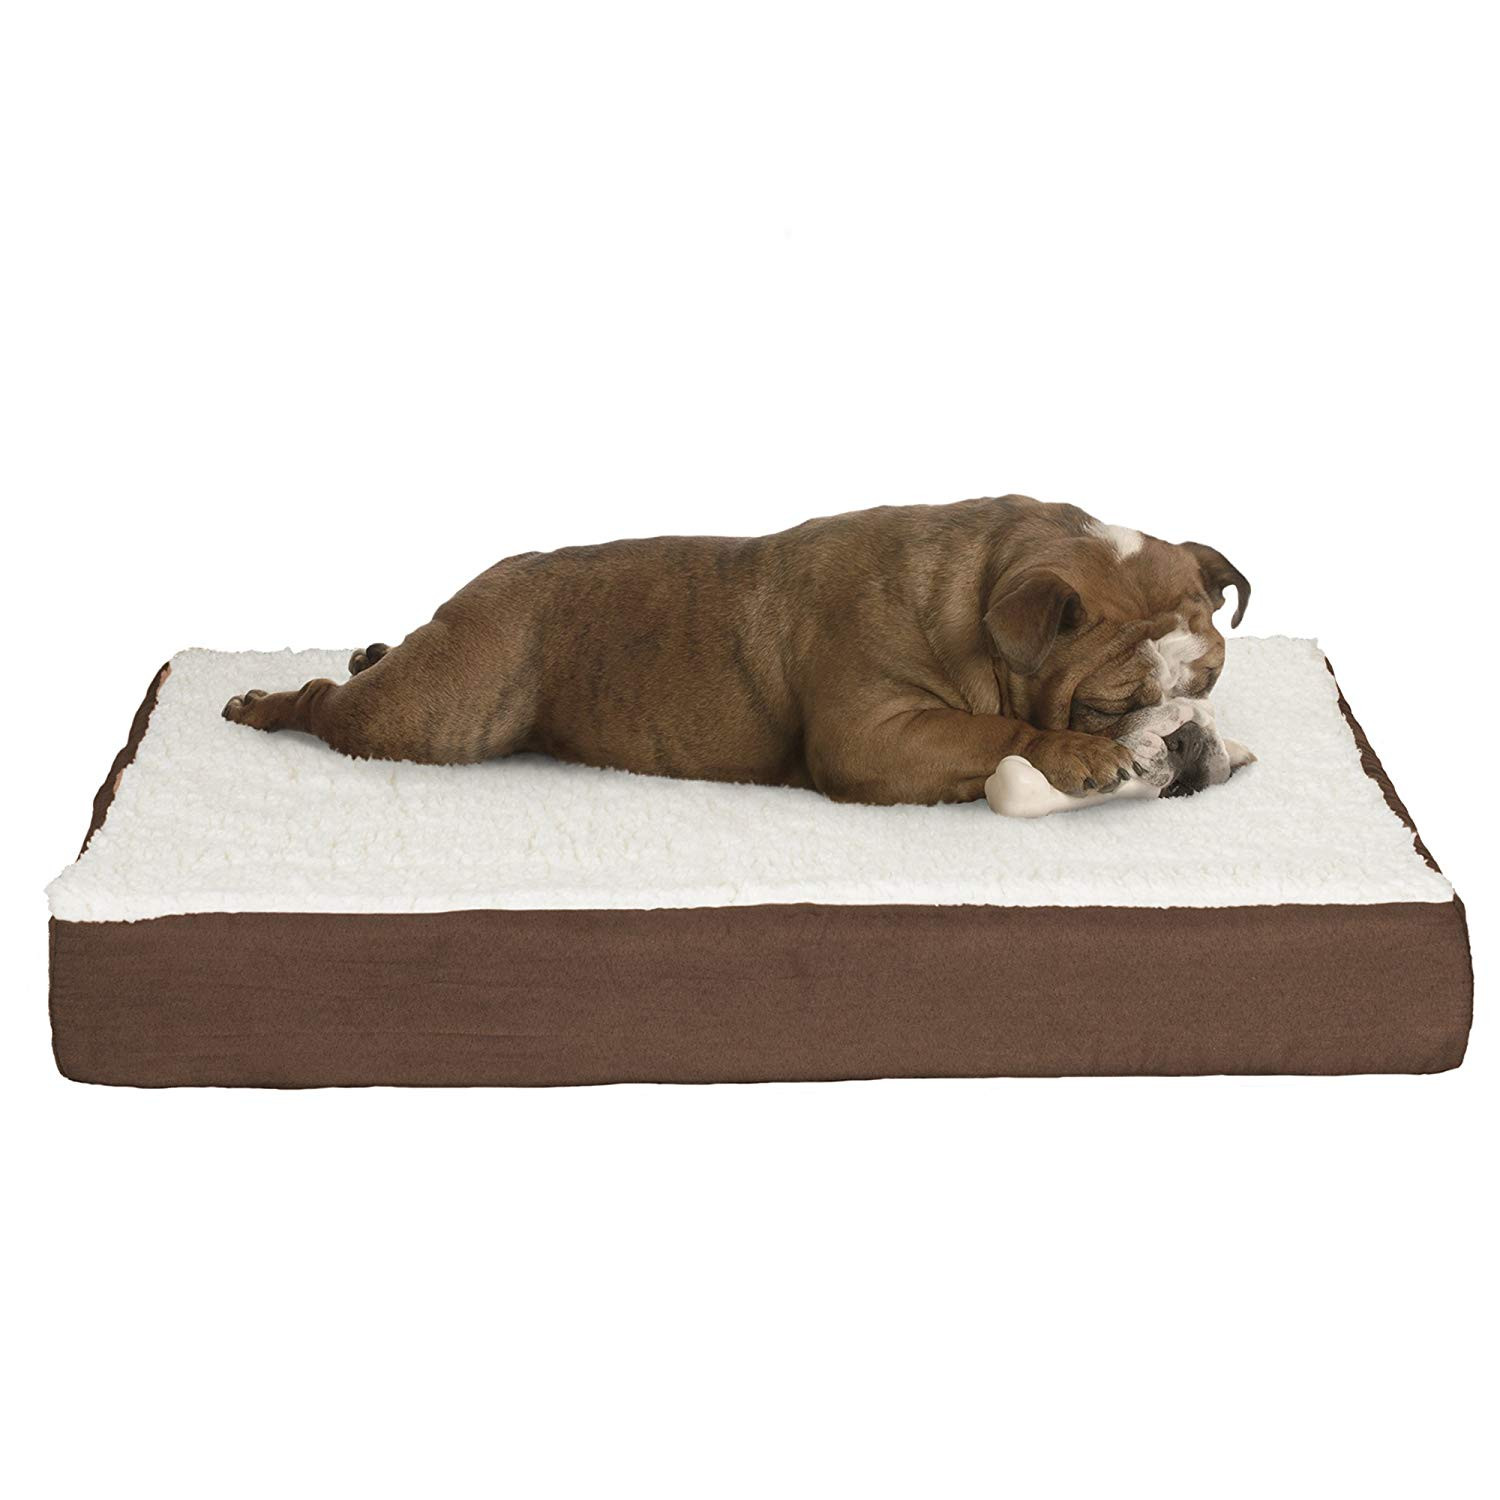 Pet Supplies Beds For Dogs Memory Foam Dog Bed